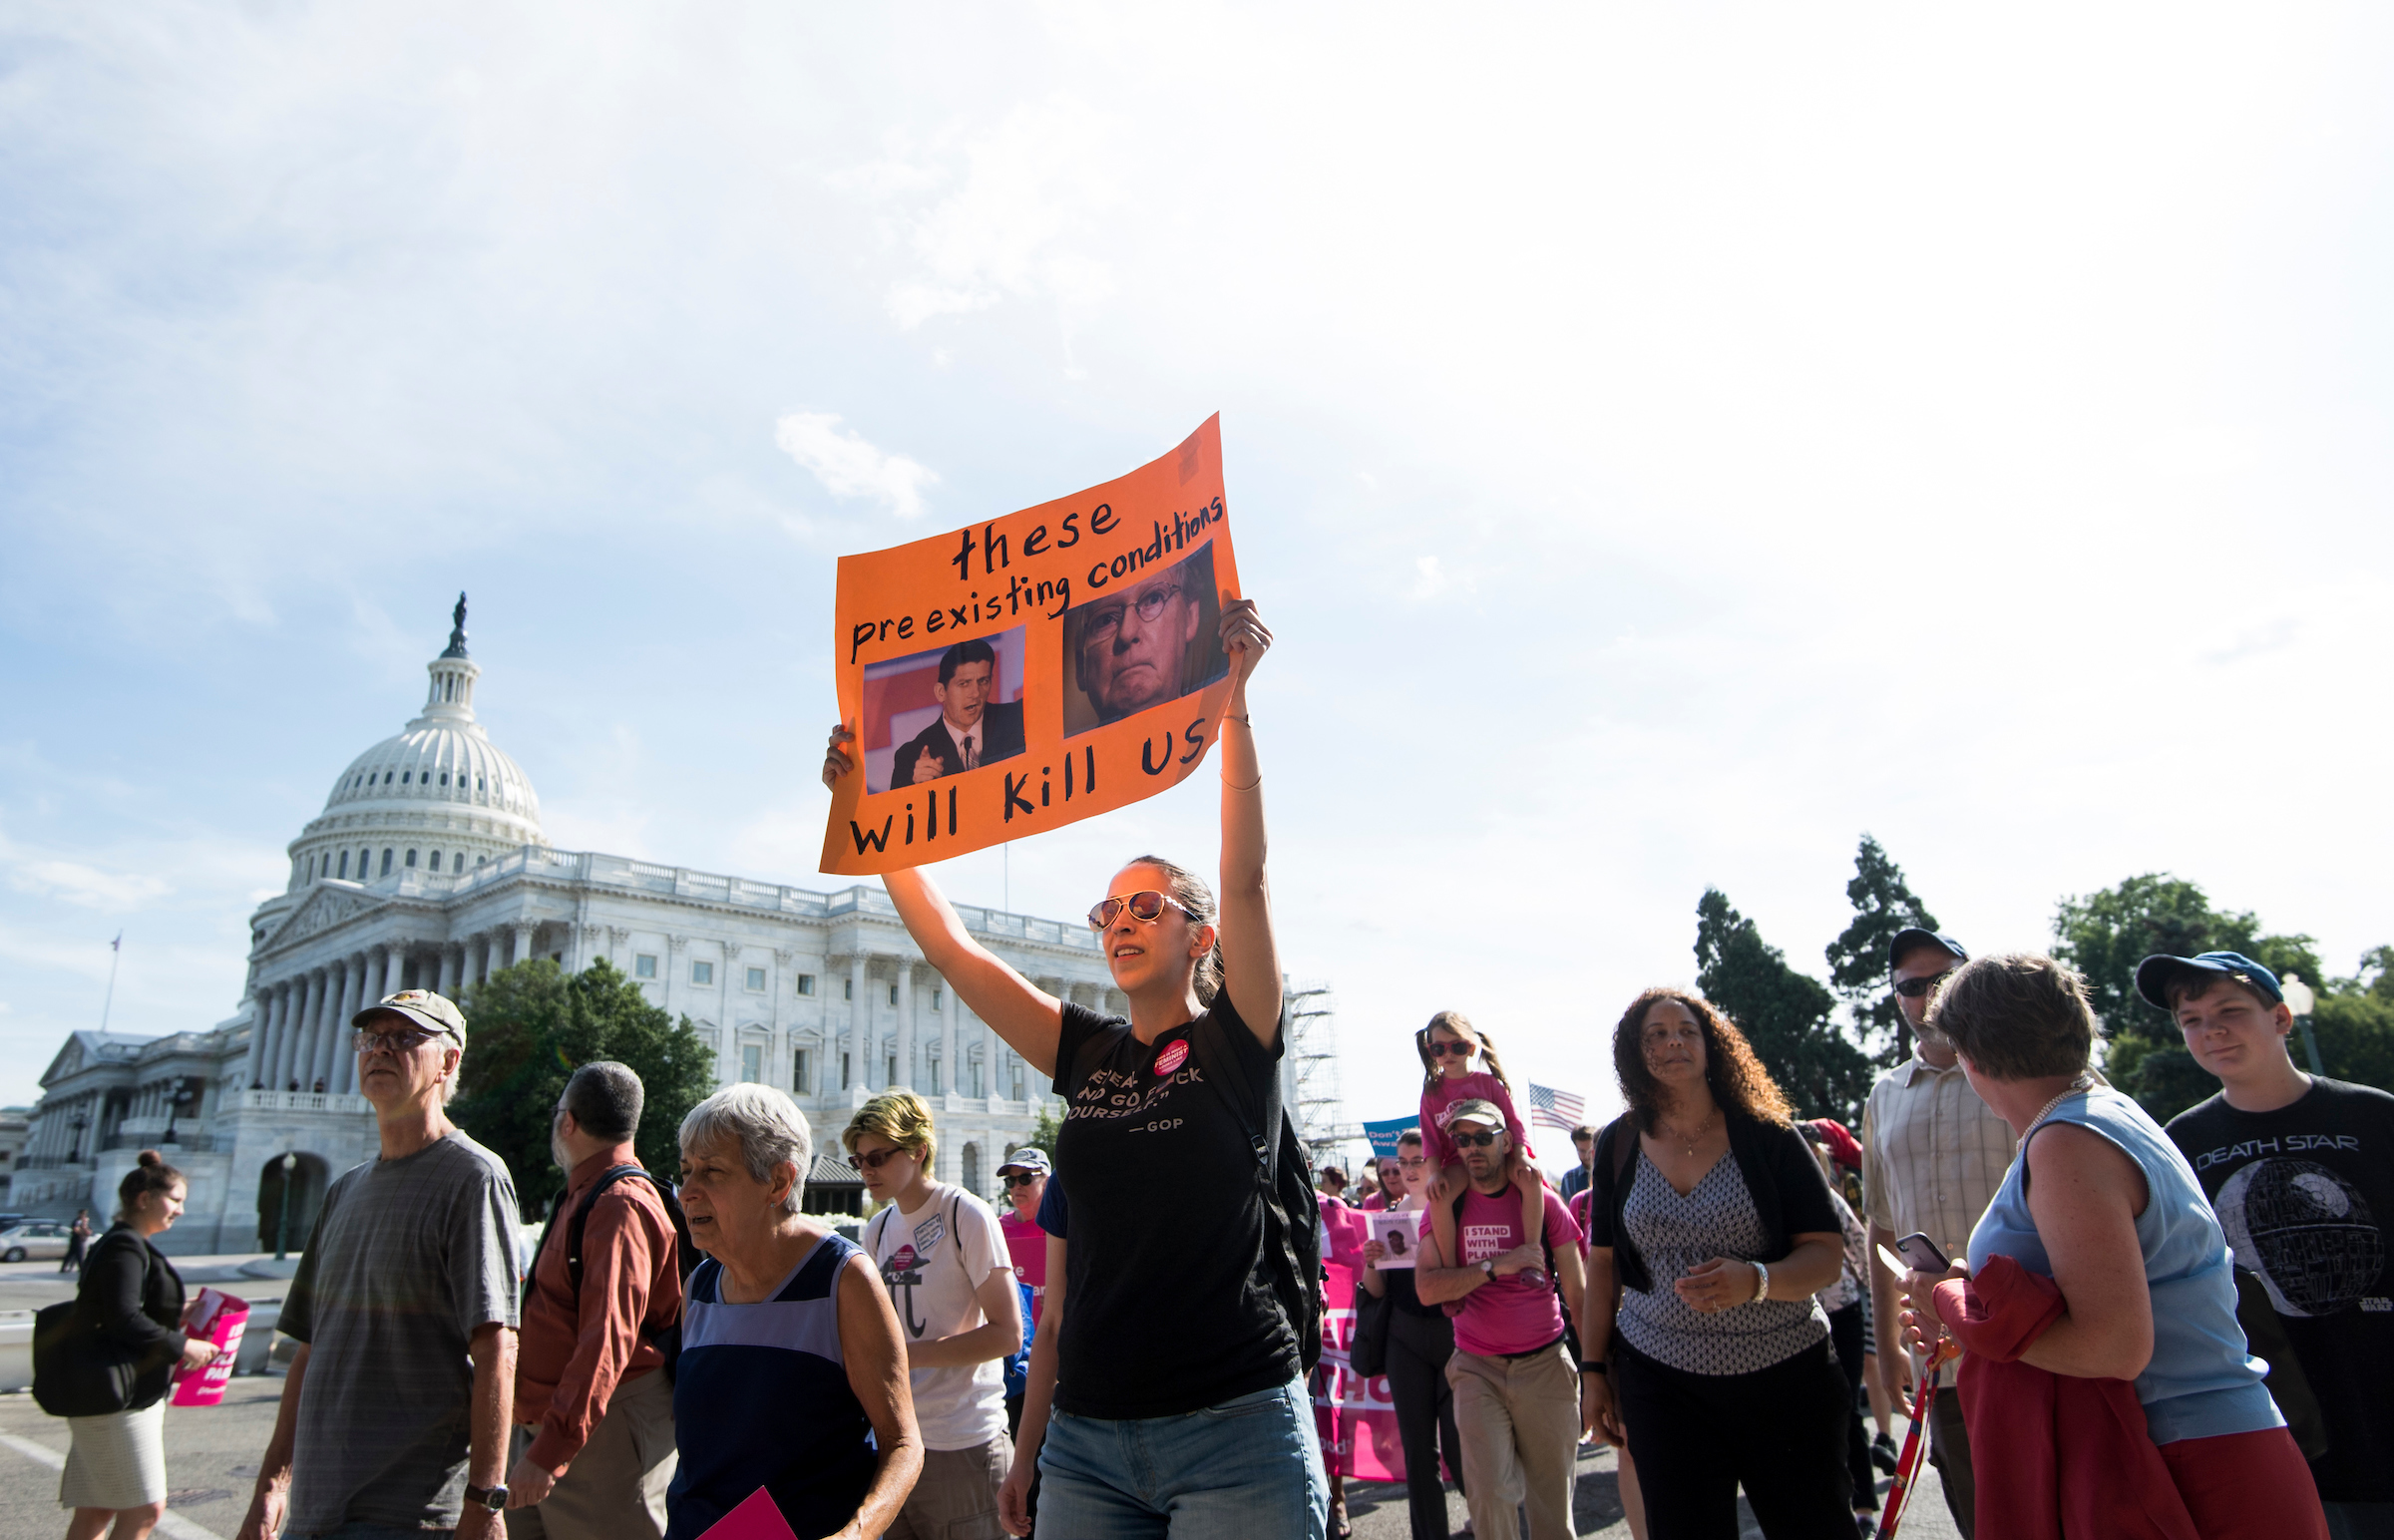 UNITED STATES - JUNE 28: Protesters march around the Capitol to voice their opposition to the GOP health care legislation on Wednesday, June 28, 2017. (Photo By Bill Clark/CQ Roll Call)